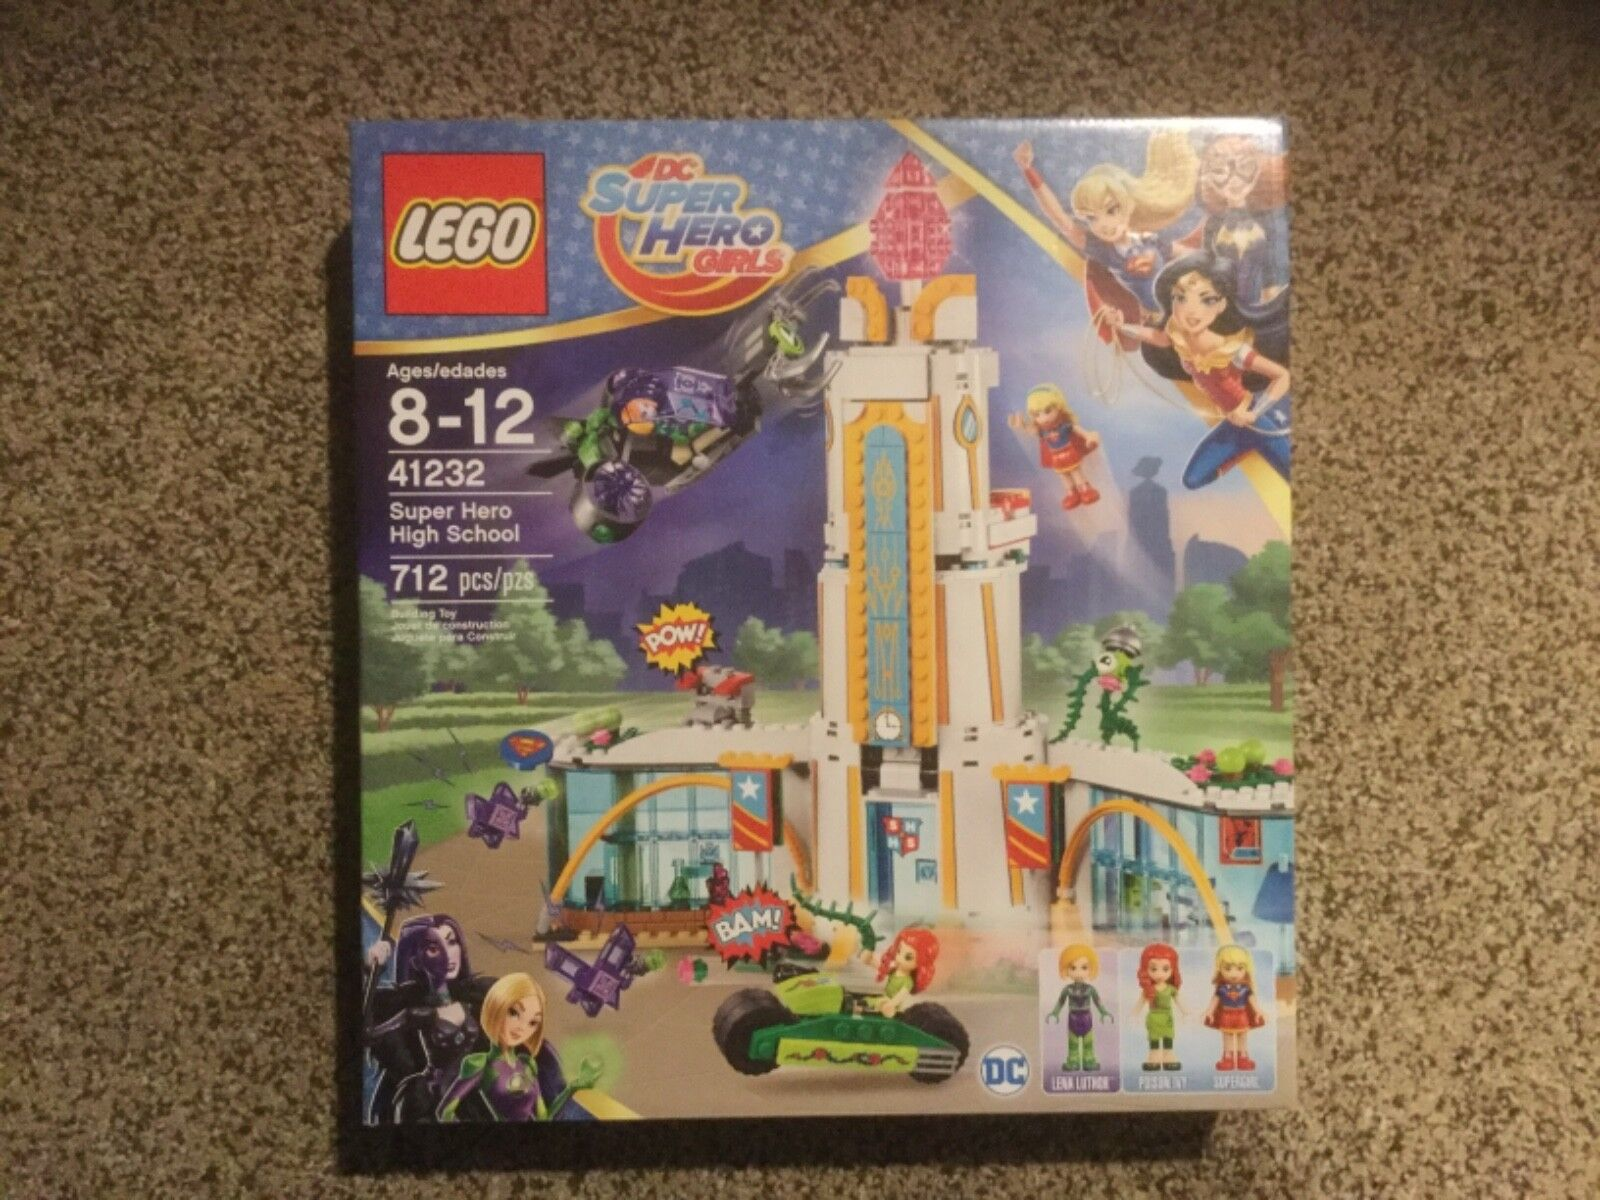 Lego DC Super Hero Girls.  Super Hero High School.  41232  New In Box.